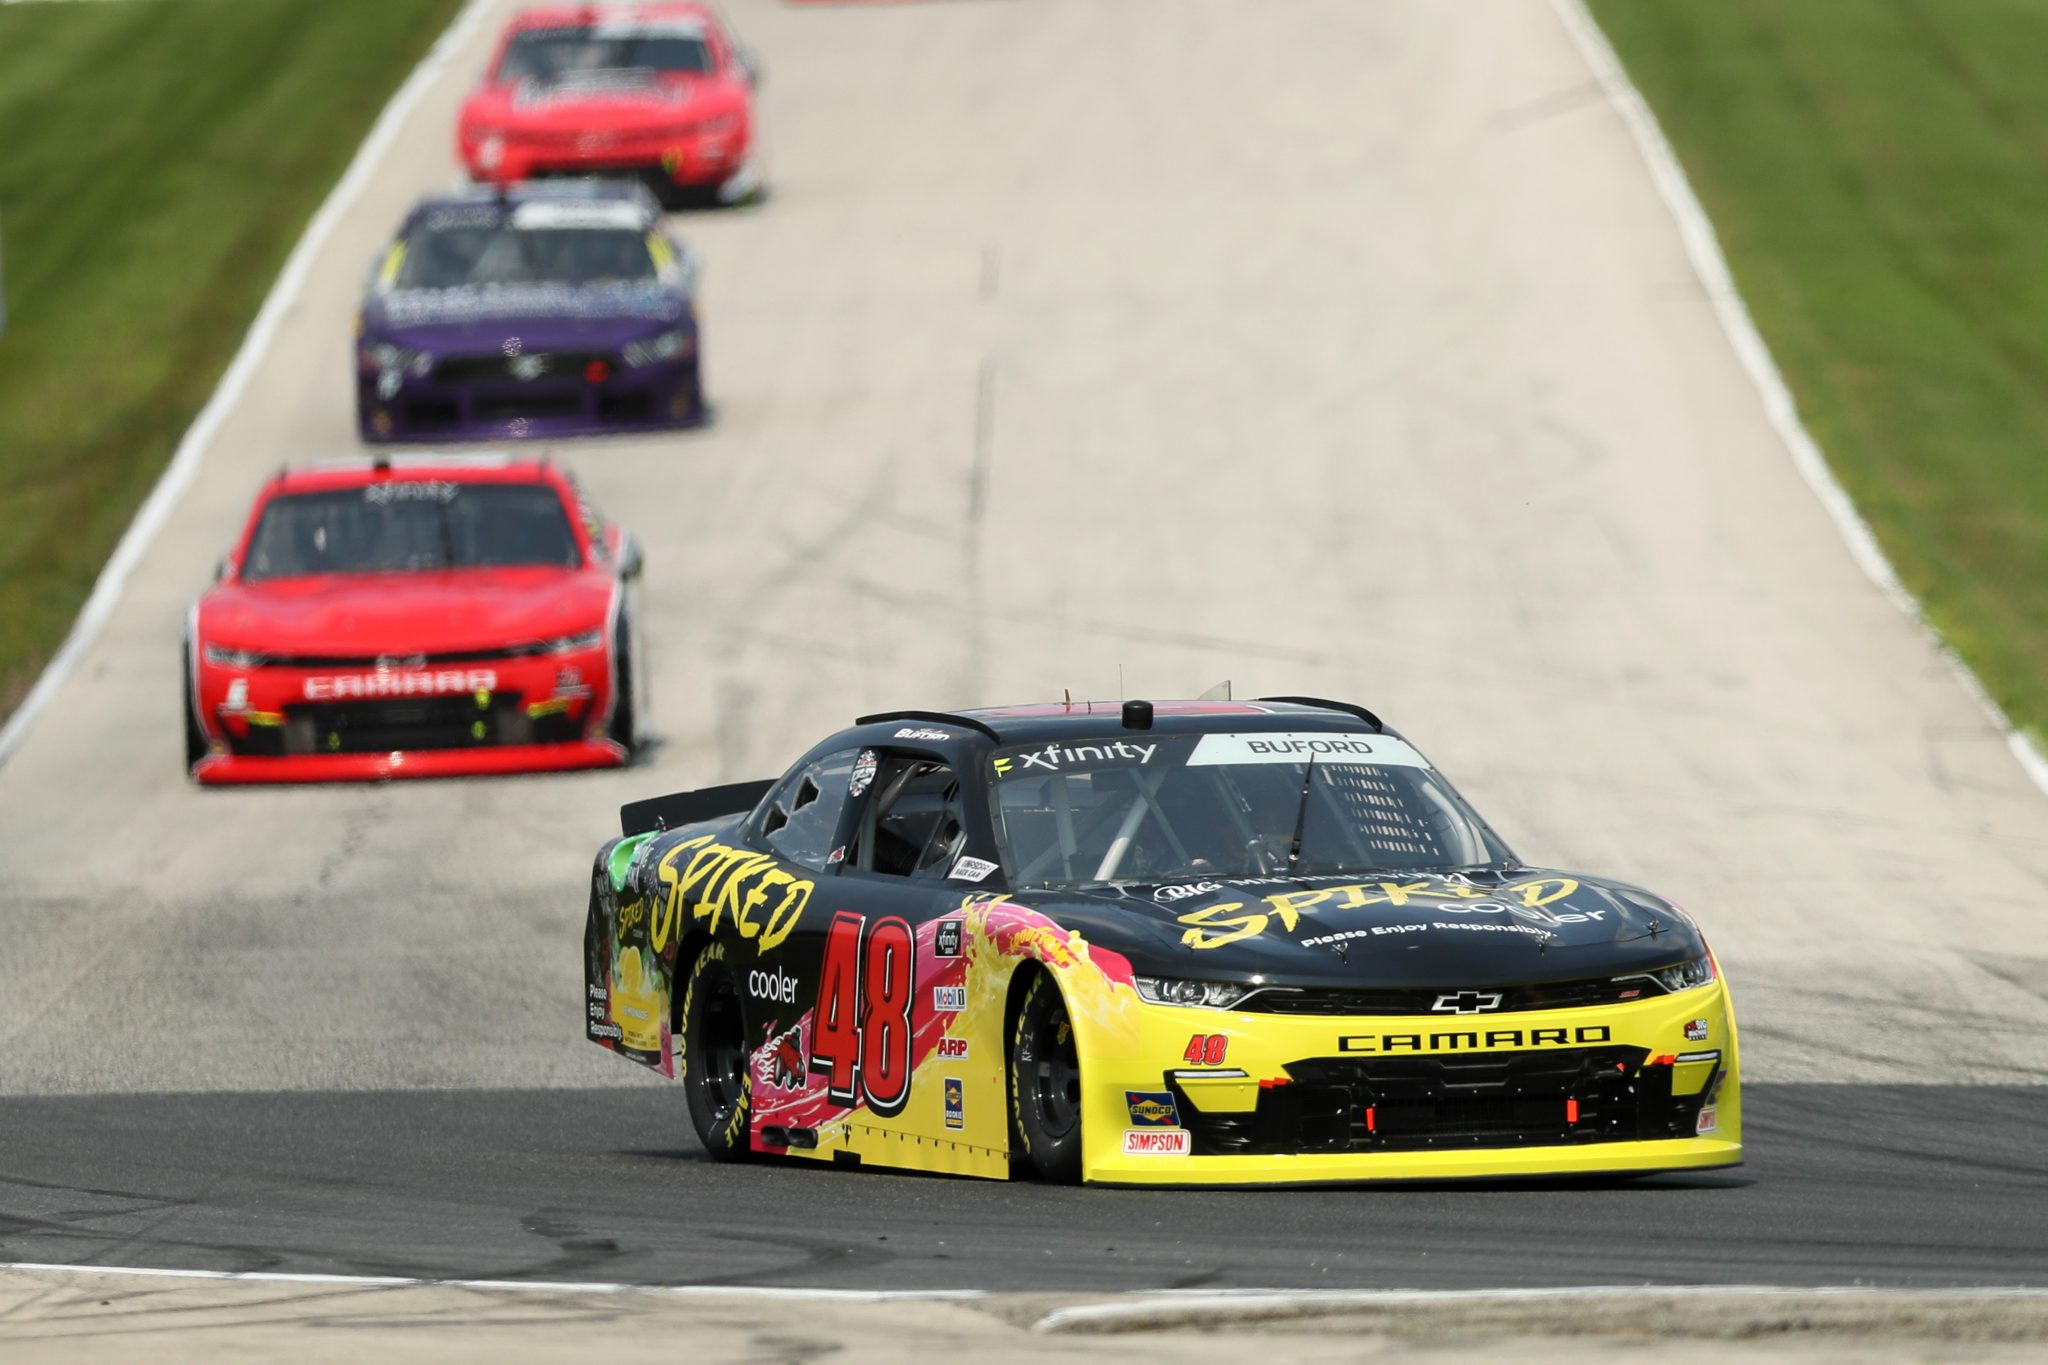 ELKHART LAKE, WISCONSIN - JULY 02: Jade Buford, driver of the #48 Big Machine Spiked Coolers Chevrolet, drives during practice for the NASCAR Xfinity Series Henry 180 at Road America on July 02, 2021 in Elkhart Lake, Wisconsin. (Photo by James Gilbert/Getty Images) | Getty Images